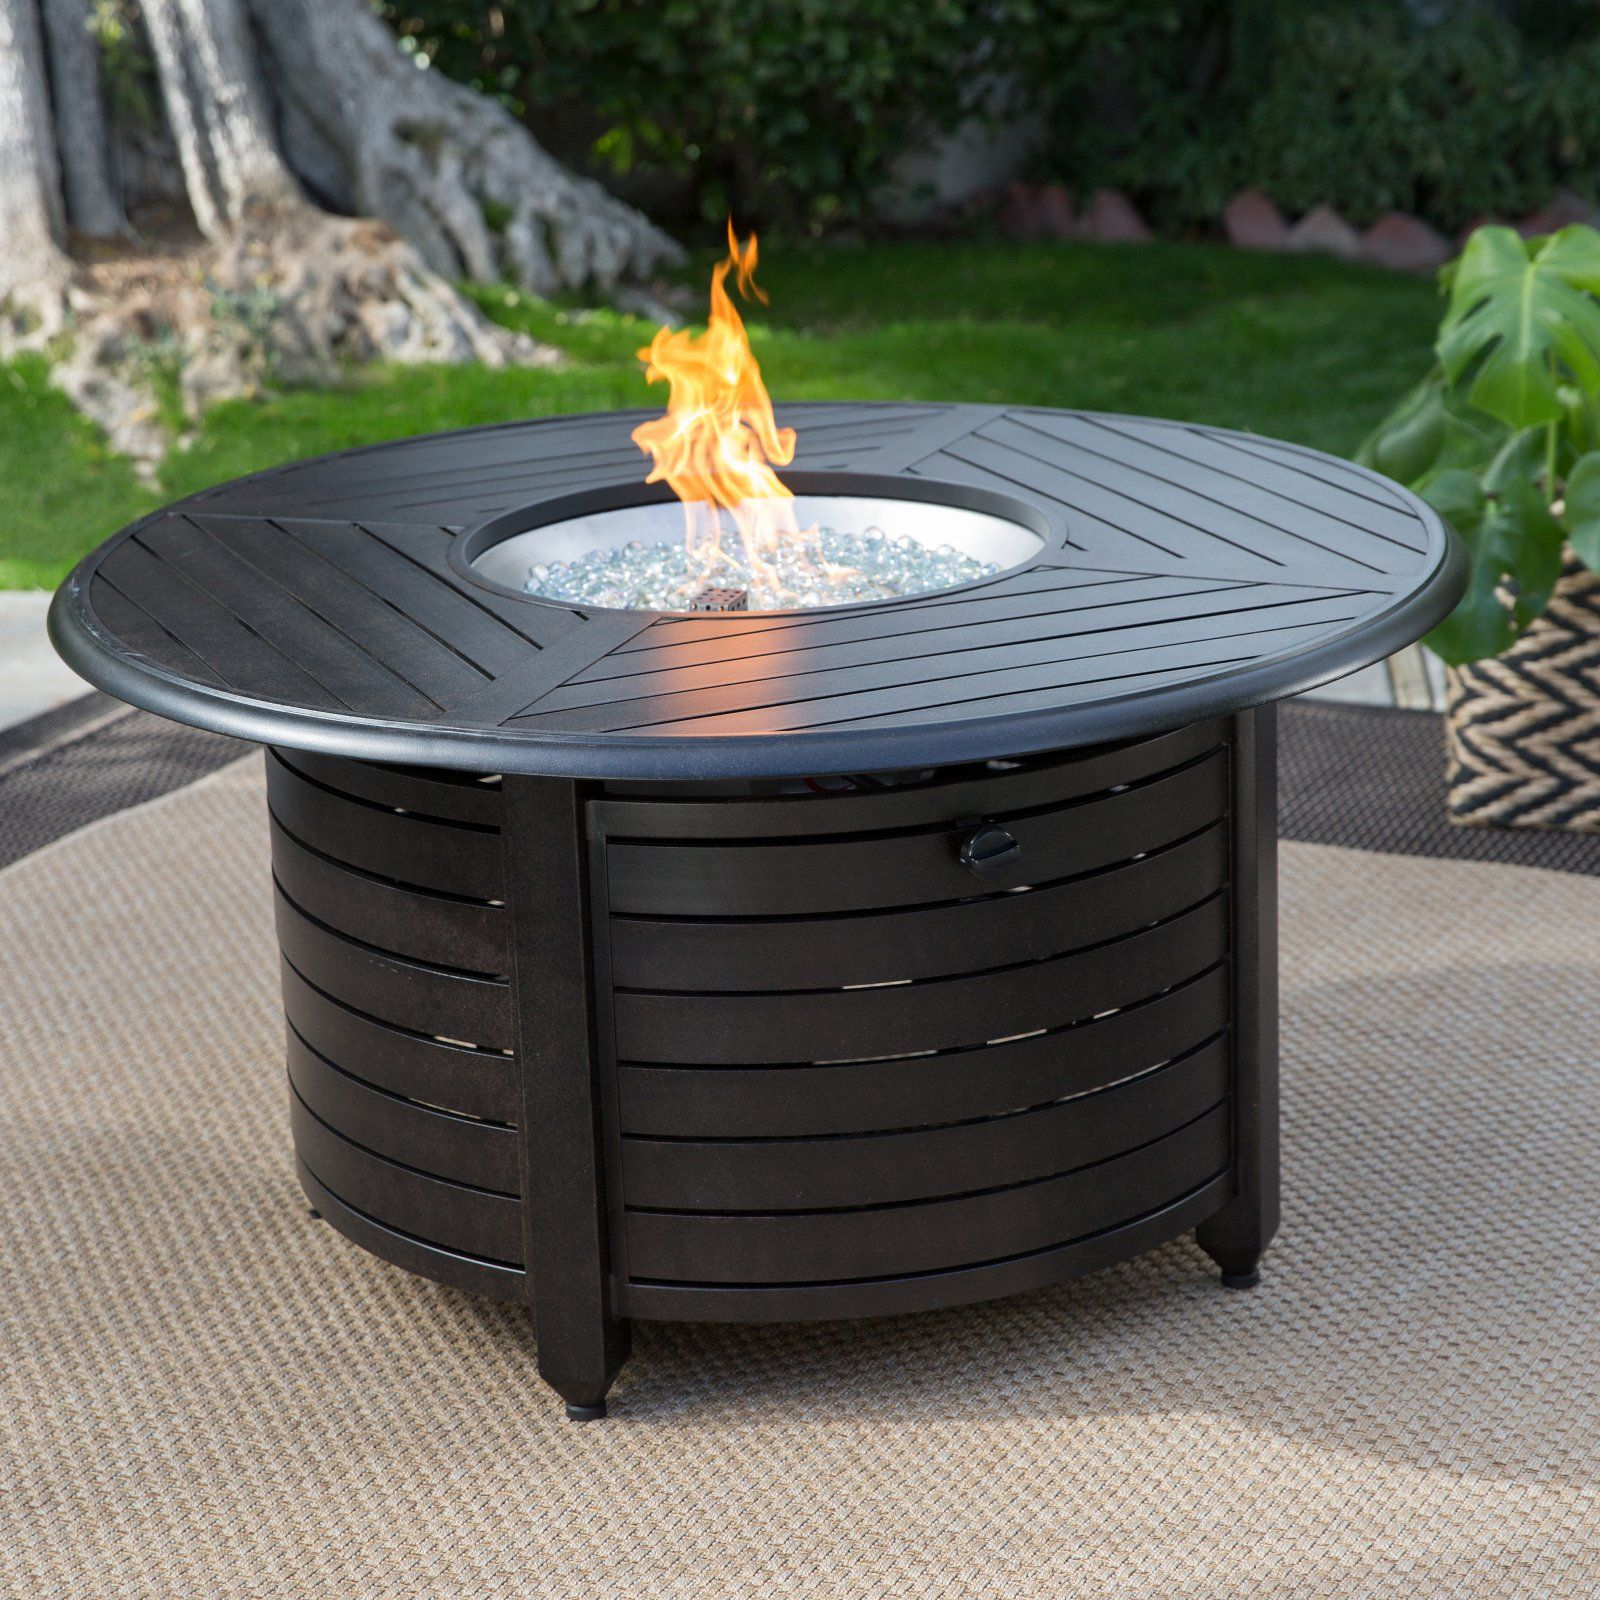 Patio Garden In 2020 Round Fire Pit Table Fire Pit Table Propane Fire Pit Table